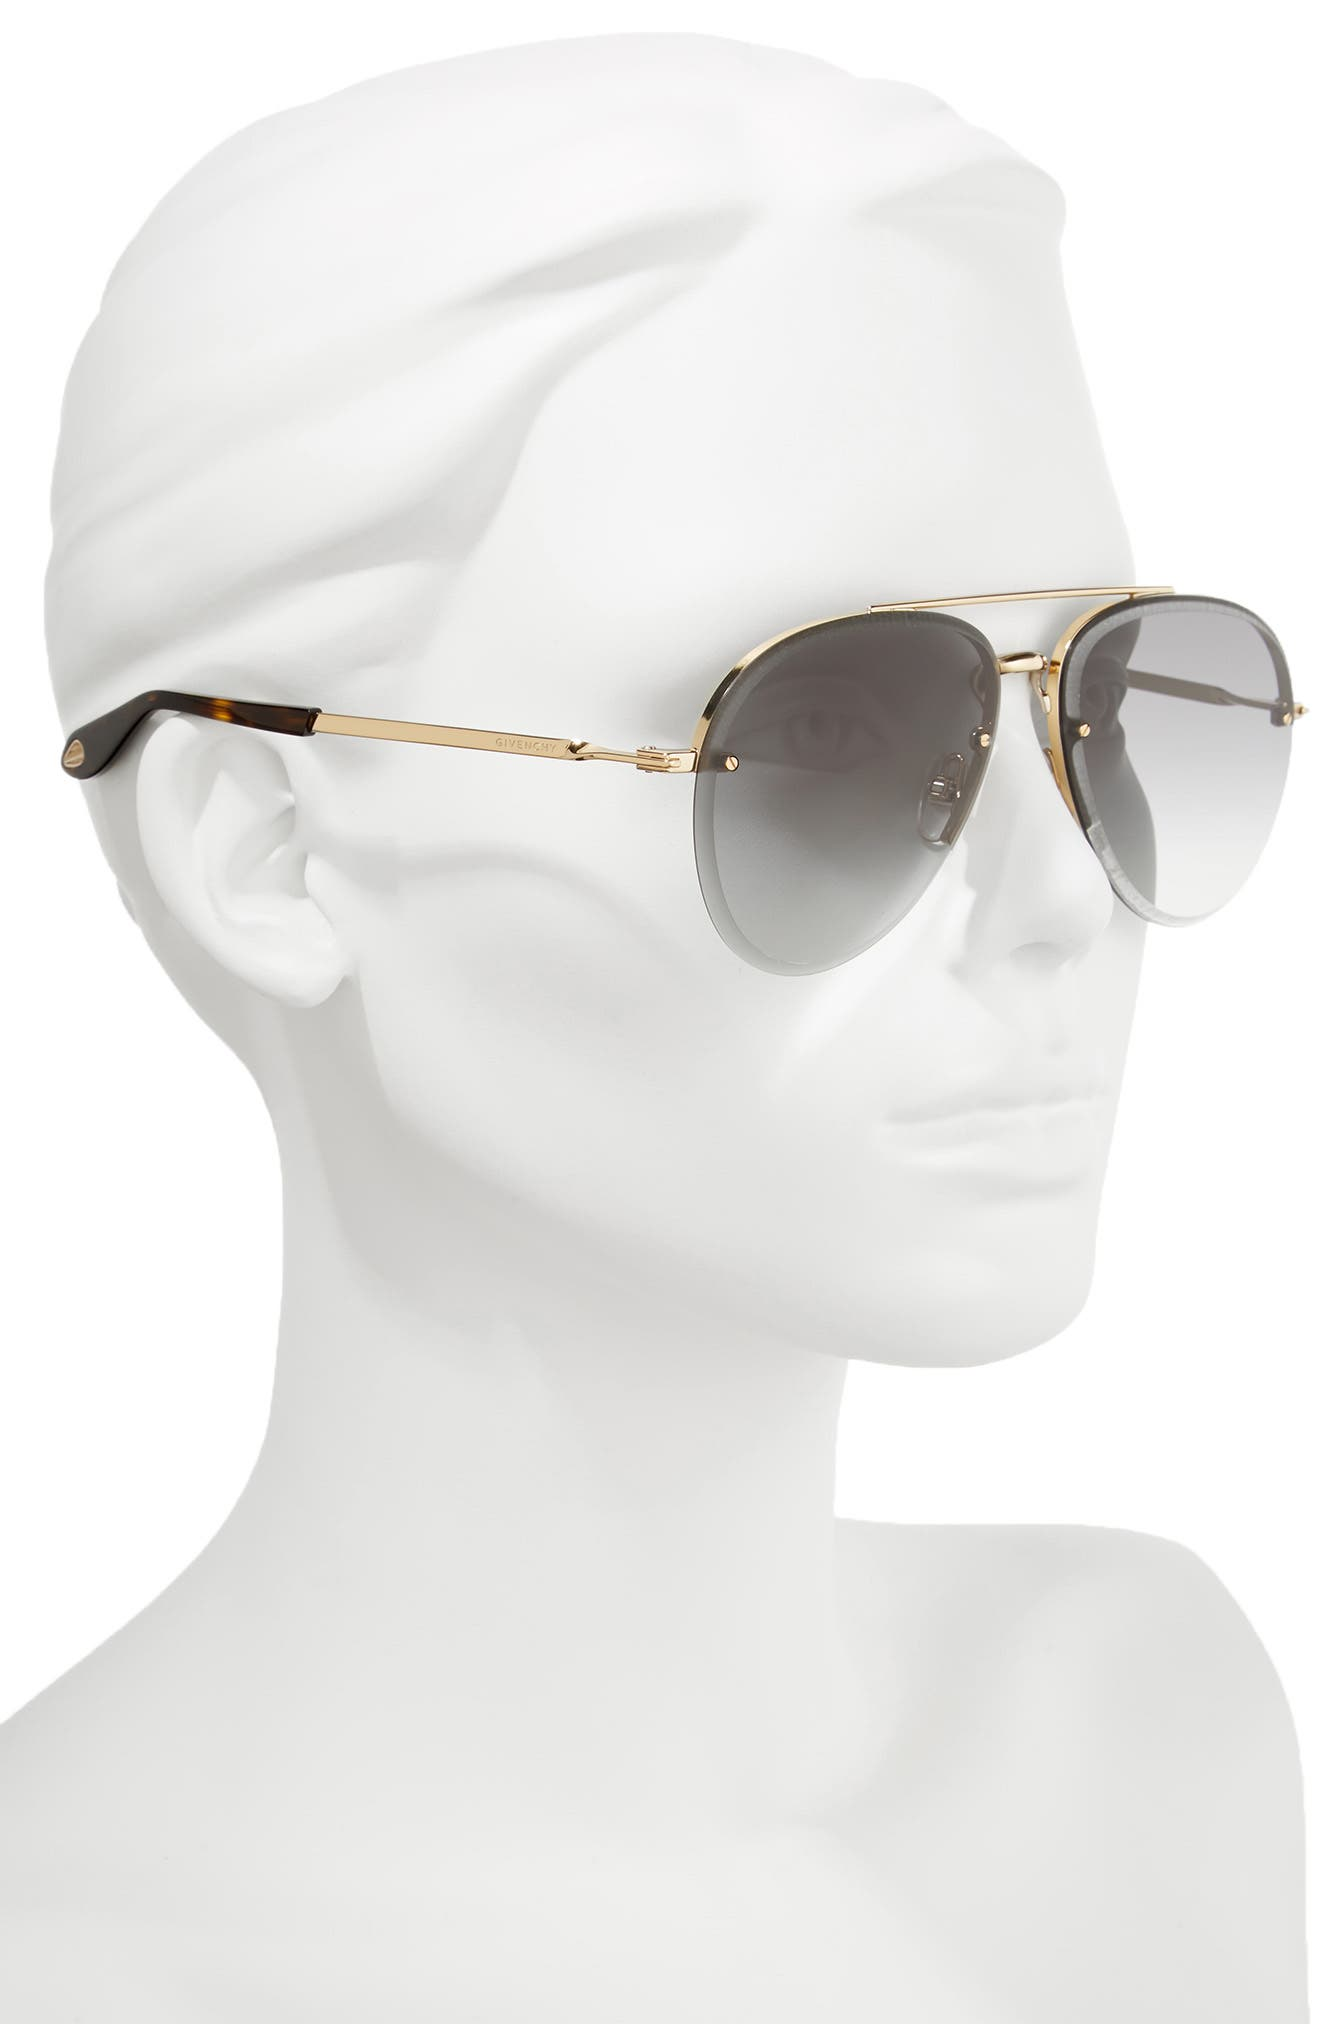 8798d568b8c5 givenchy sunglasses | Nordstrom